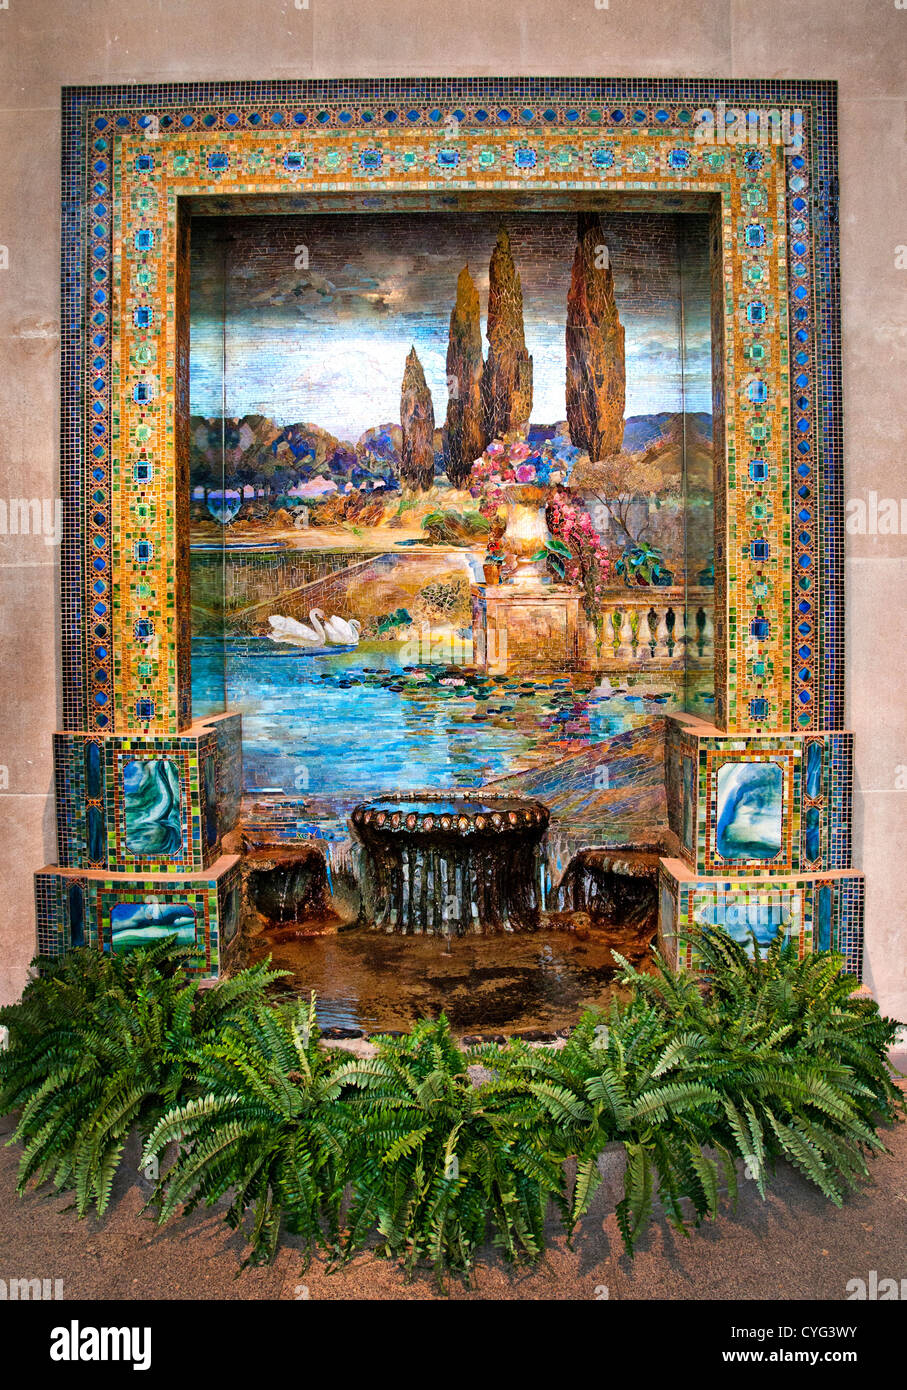 Garden Landscape by Louis Comfort Tiffany American New York City 1848–1933 Favrile glass mosaic  262 x 289 cm Stock Photo